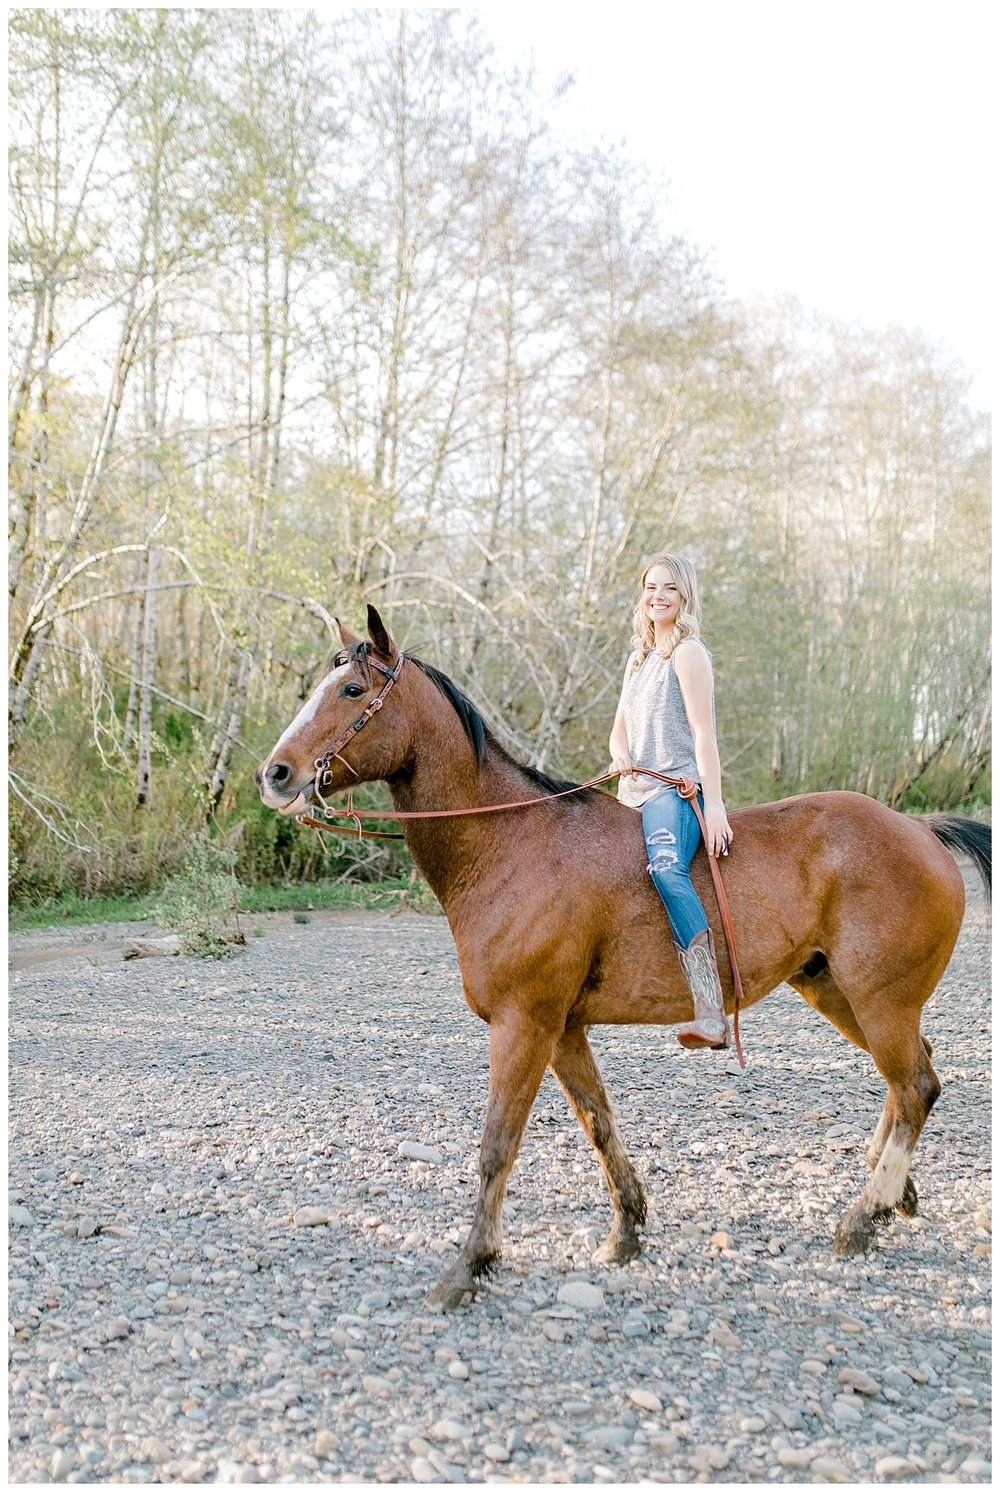 Sunset Senior Session with Horse | Senior Session Inspiration Session | Horse Photo Session | Pacific Northwest Light and Airy Wedding and Portrait Photographer | Emma Rose Company | Kindred Presets Horse.jpg